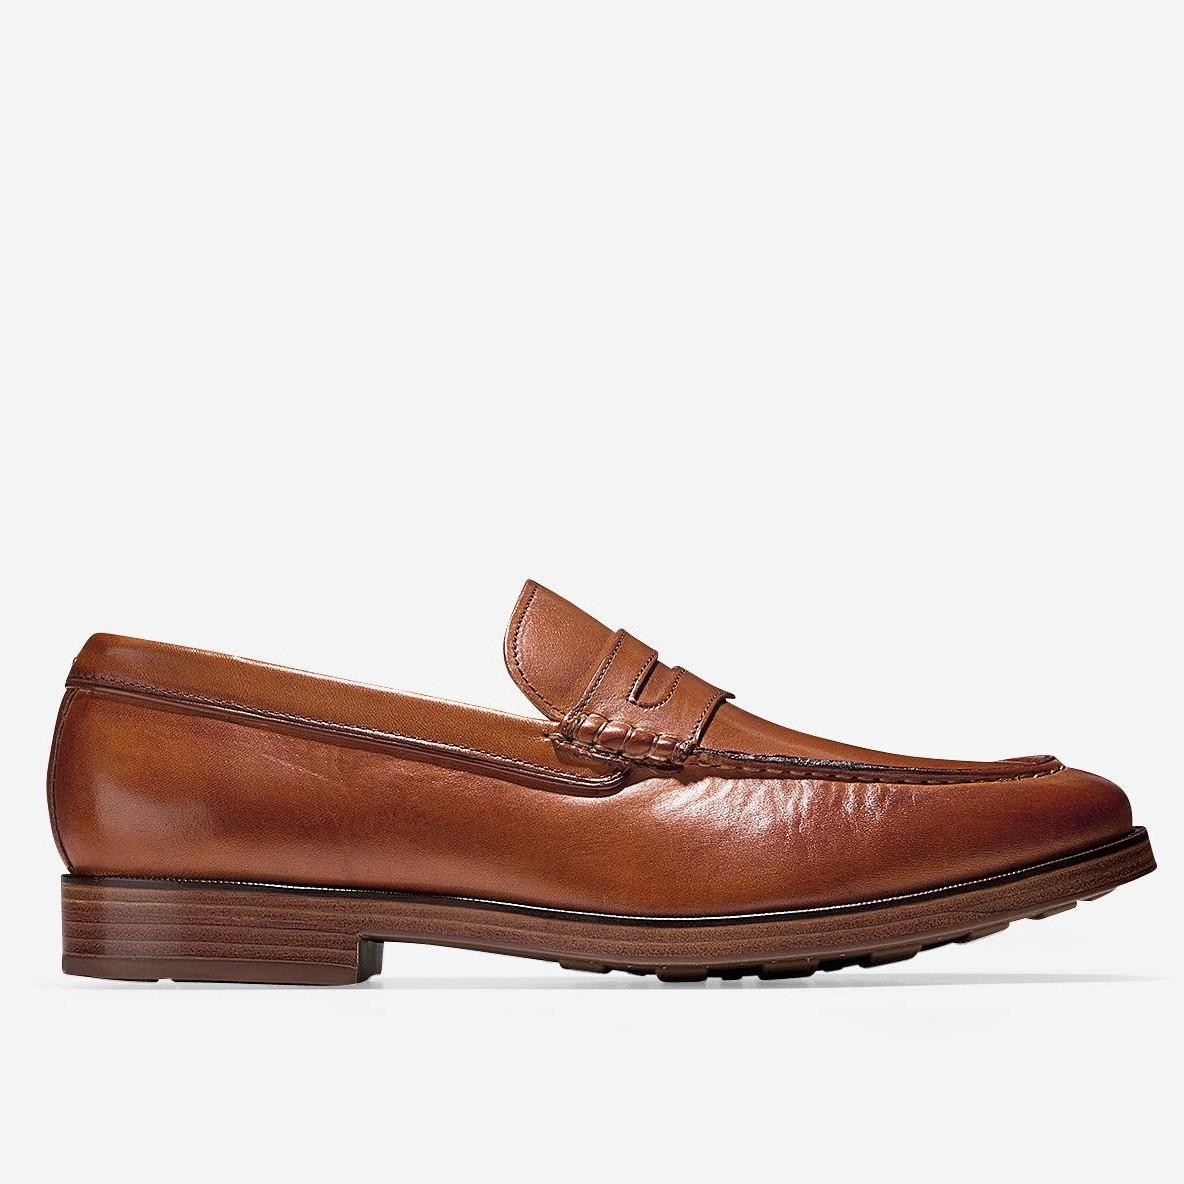 95eda4c86db Cole Haan Hamilton Grand Venetian Loafer In British Tan Leather ...